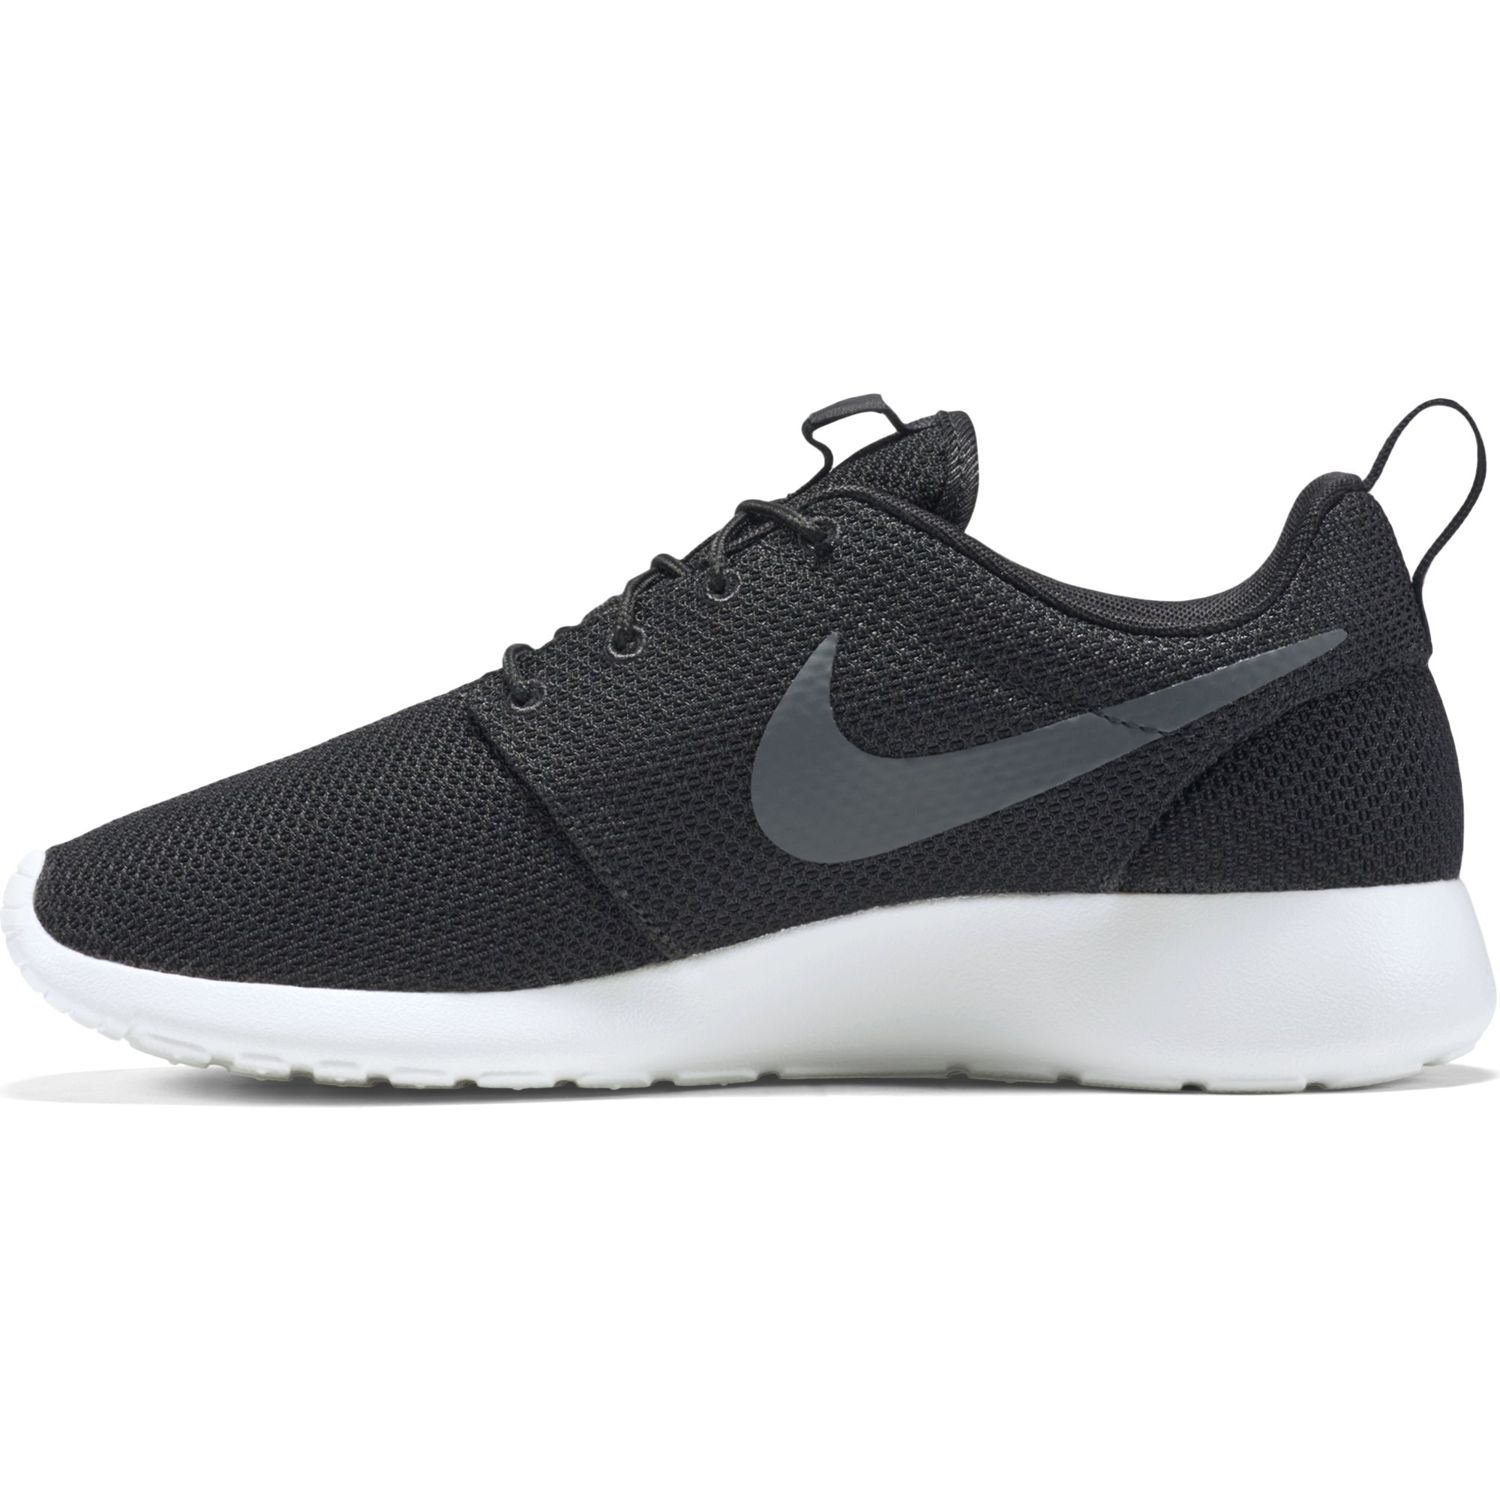 Nike Roshe One Black/White 511881-010